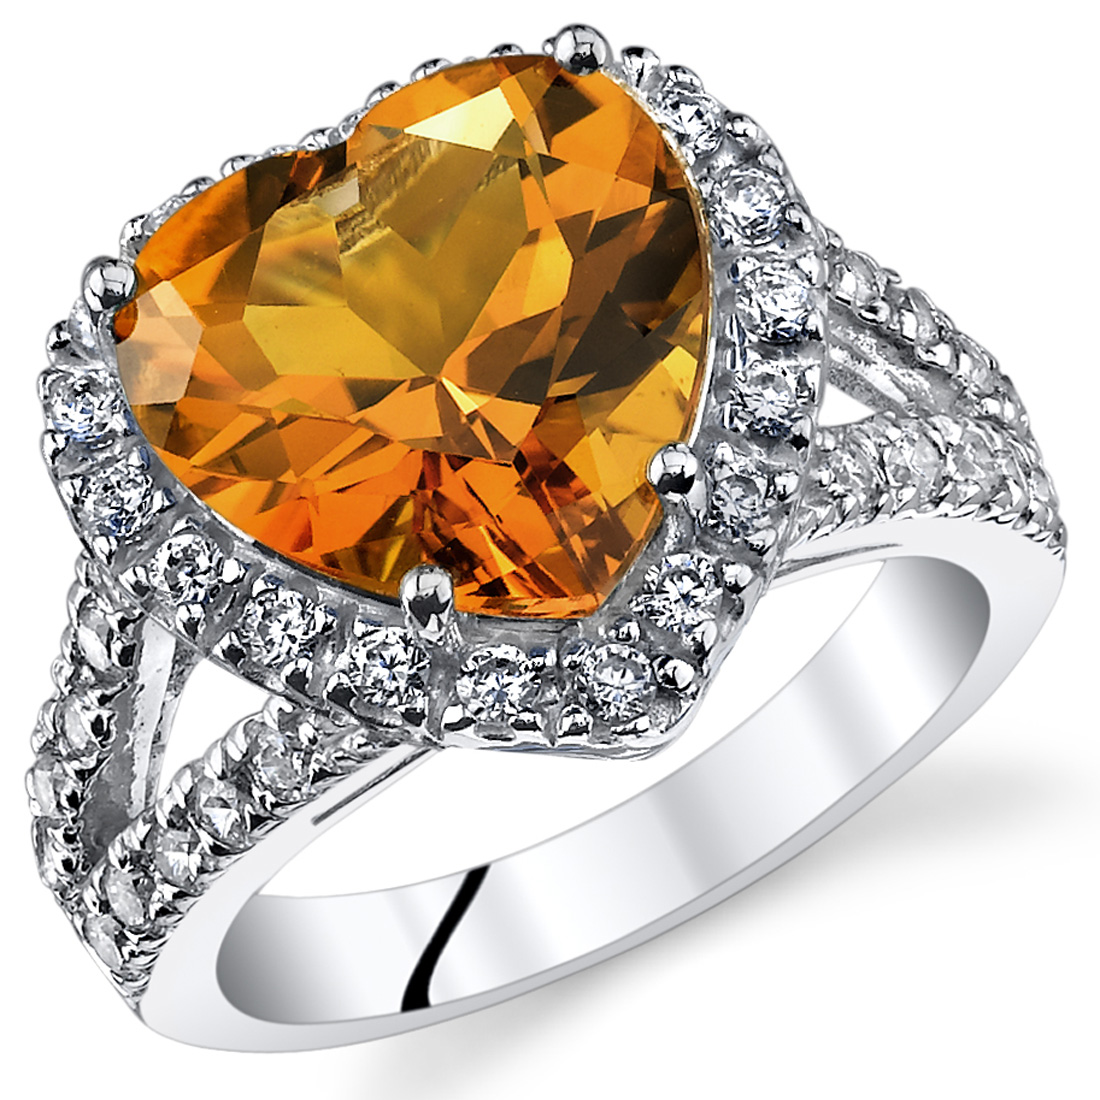 Peora 3.75 Ct Citrine Engagement Ring in Rhodium-Plated Sterling Silver